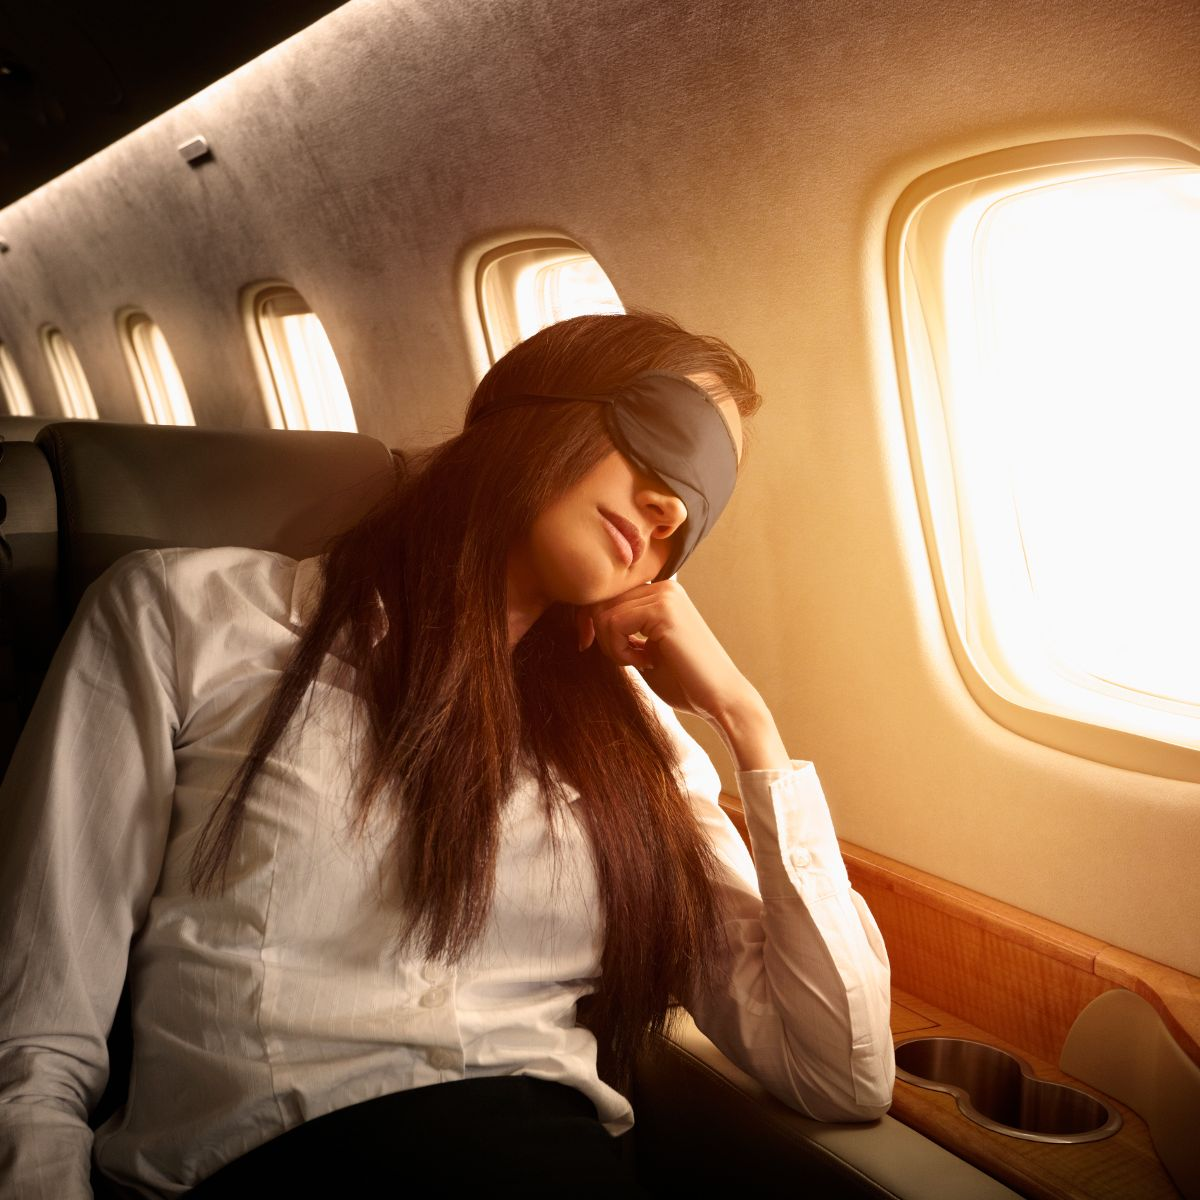 nap Travel Hacks: How to Sleep Better While You're Traveling